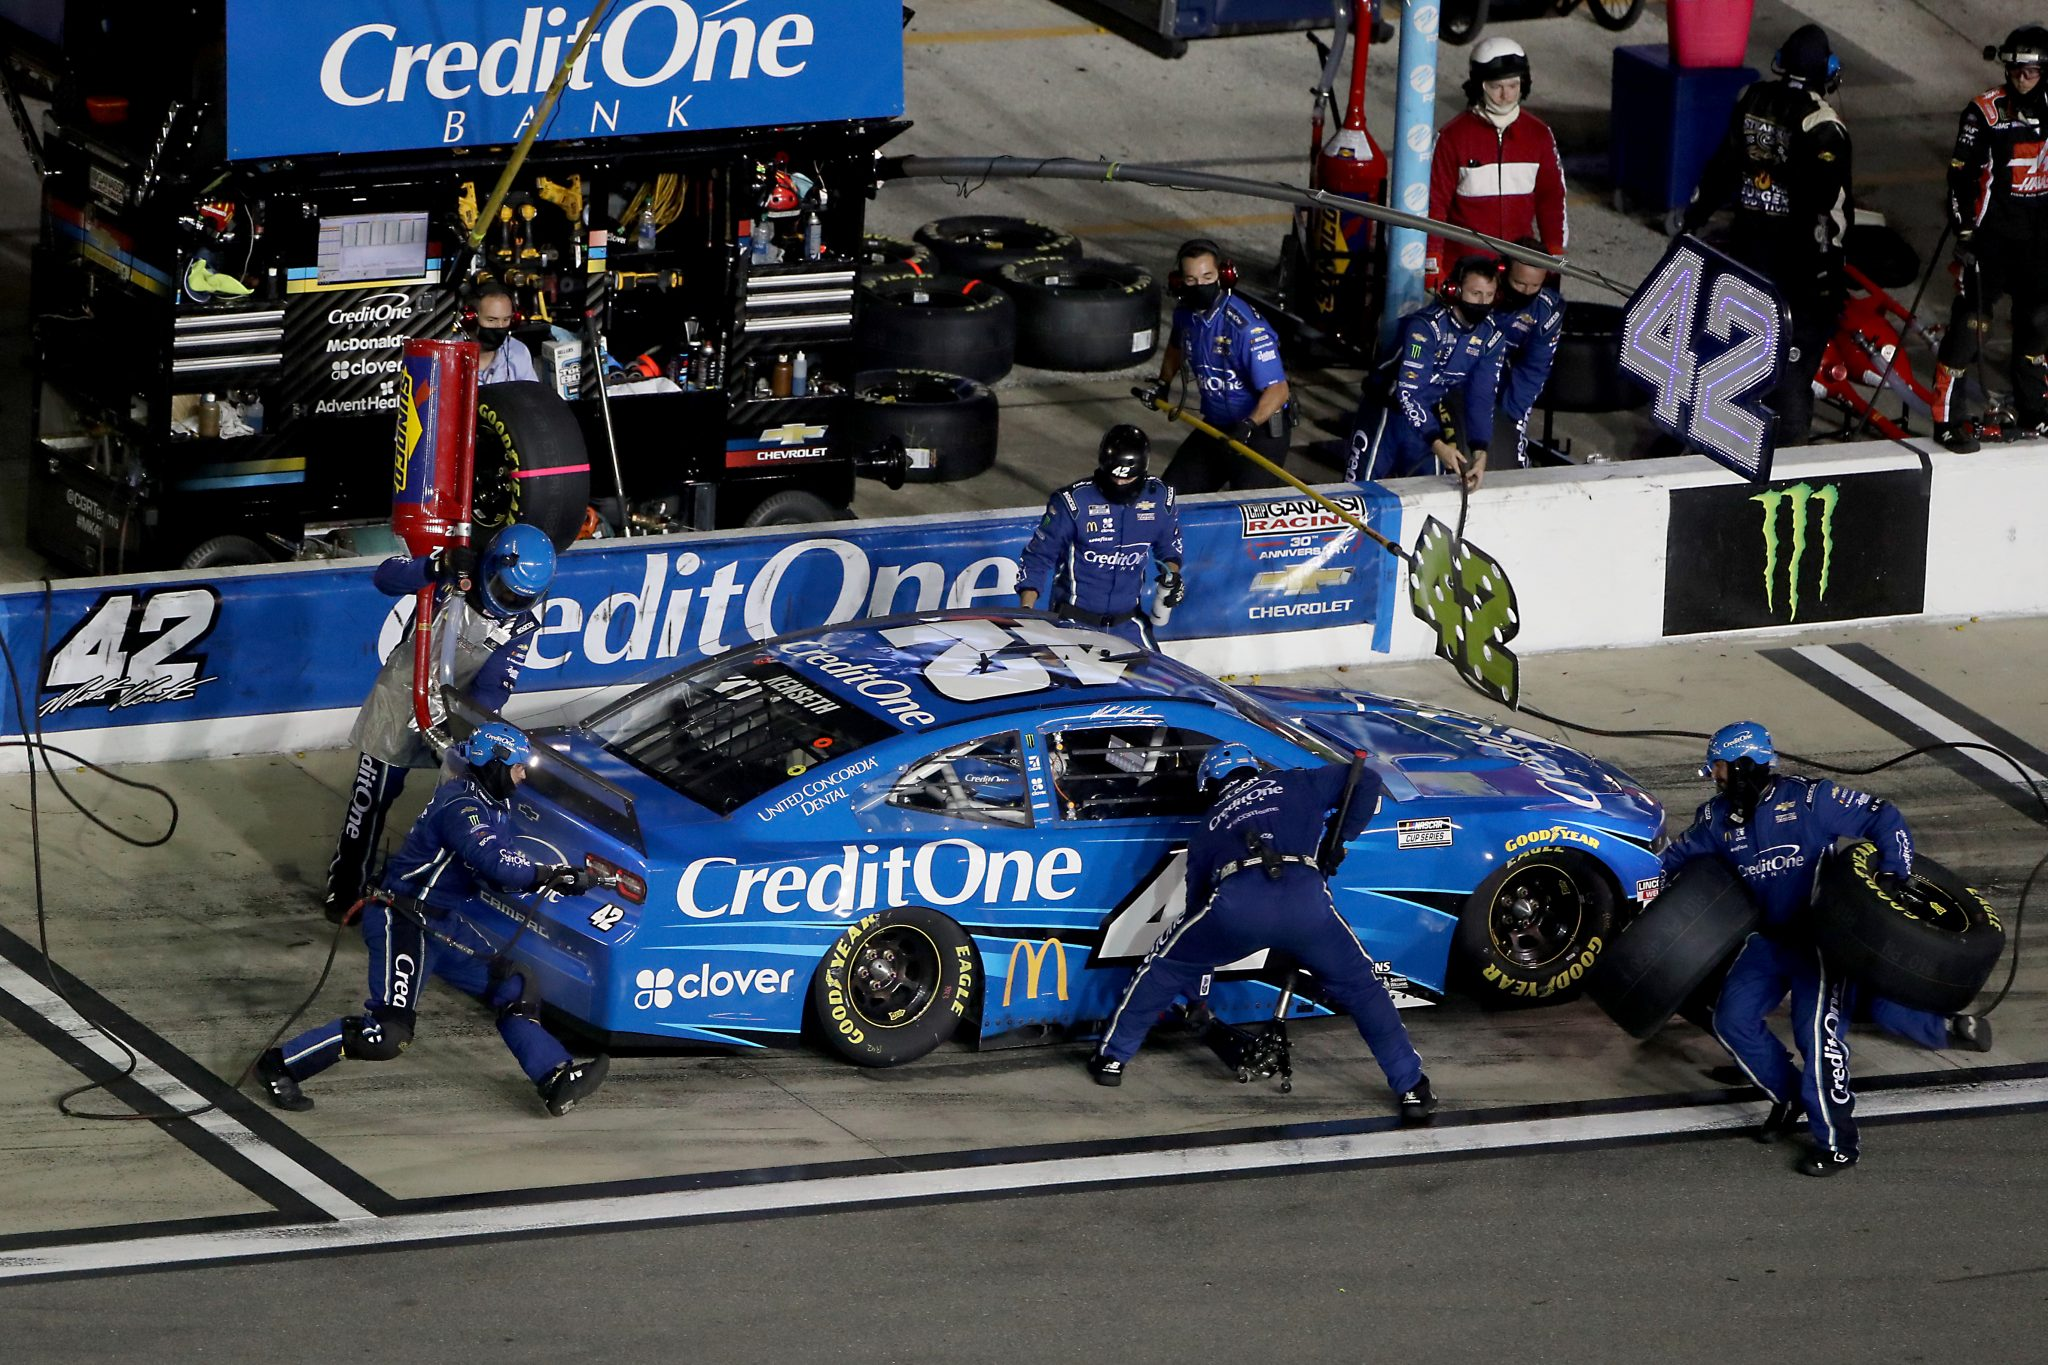 DAYTONA BEACH, FLORIDA - AUGUST 29: Matt Kenseth, driver of the #42 Credit One Bank Chevrolet, pits during the NASCAR Cup Series Coke Zero Sugar 400 at Daytona International Speedway on August 29, 2020 in Daytona Beach, Florida. (Photo by Brian Lawdermilk/Getty Images) | Getty Images